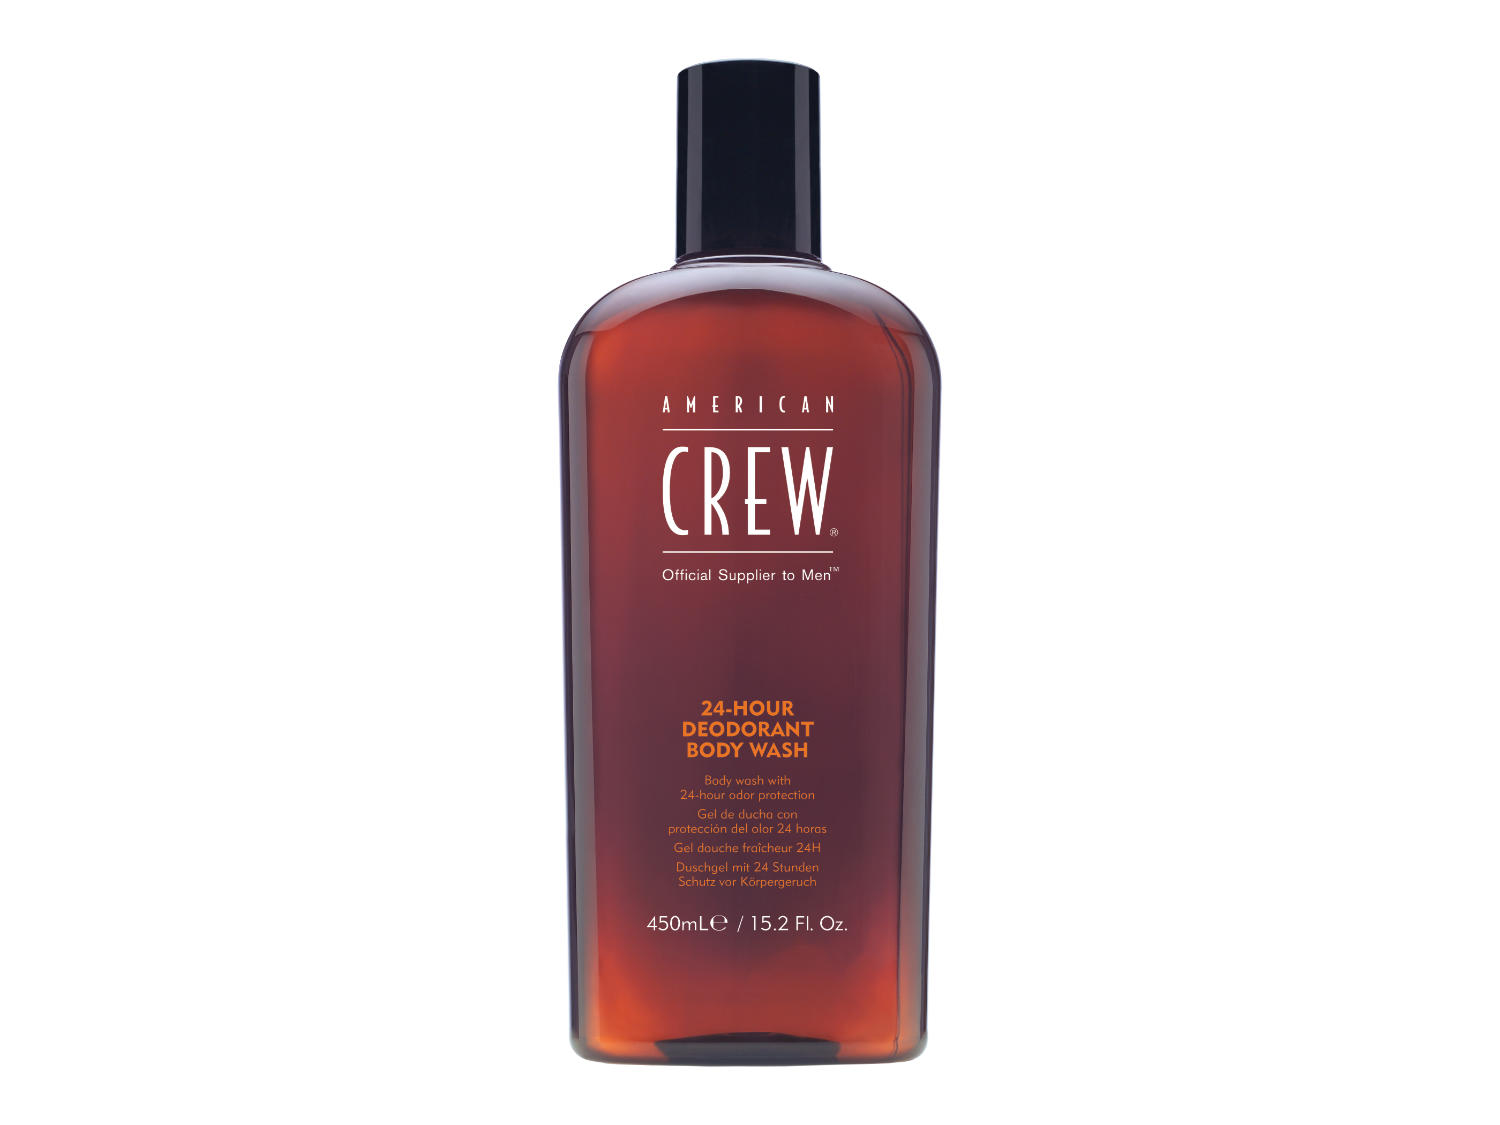 Arma Beauty - American Crew - 24-Hour Body Wash